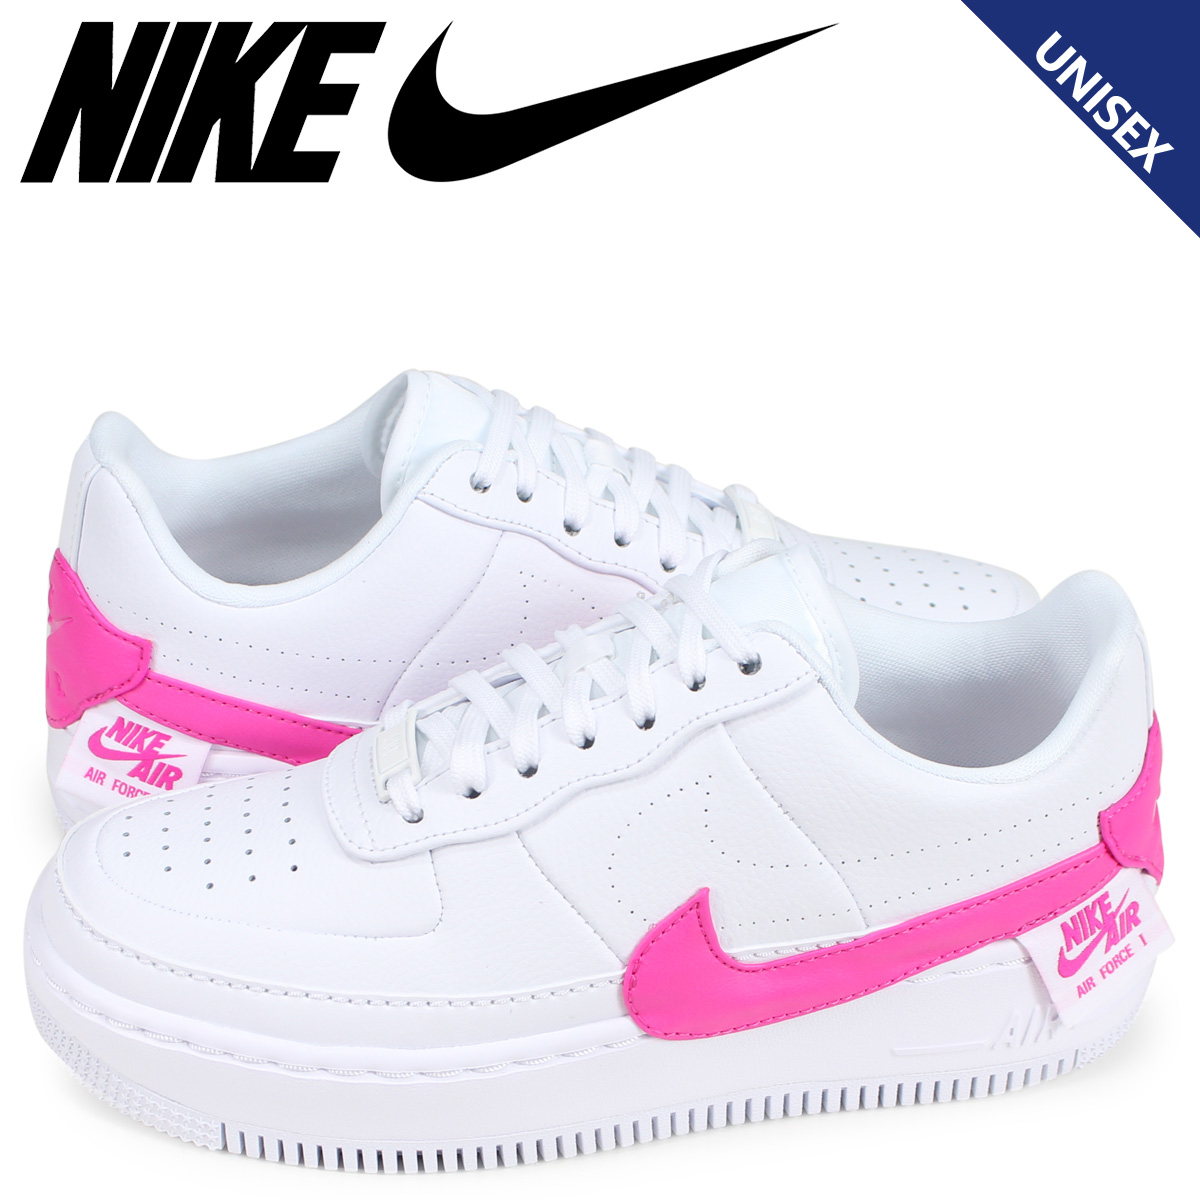 NIKE WMNS AIR FORCE 1 JESTER XX Nike air force 1 sneakers men gap Dis white white AO1220 105